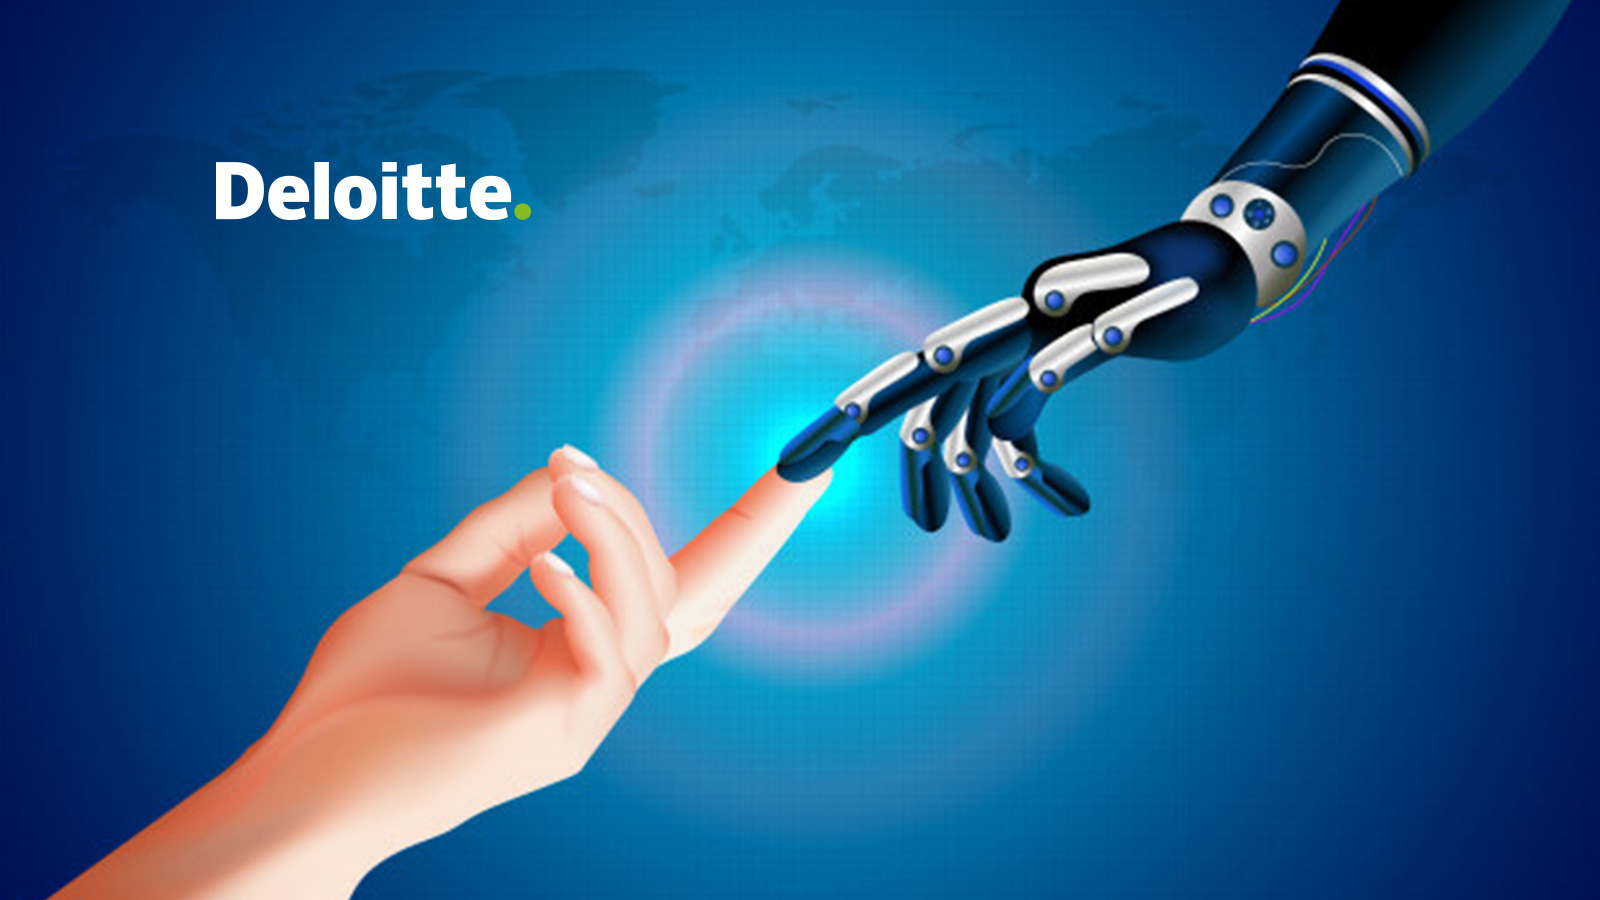 New Collaboration Between Deloitte France and Dataiku to